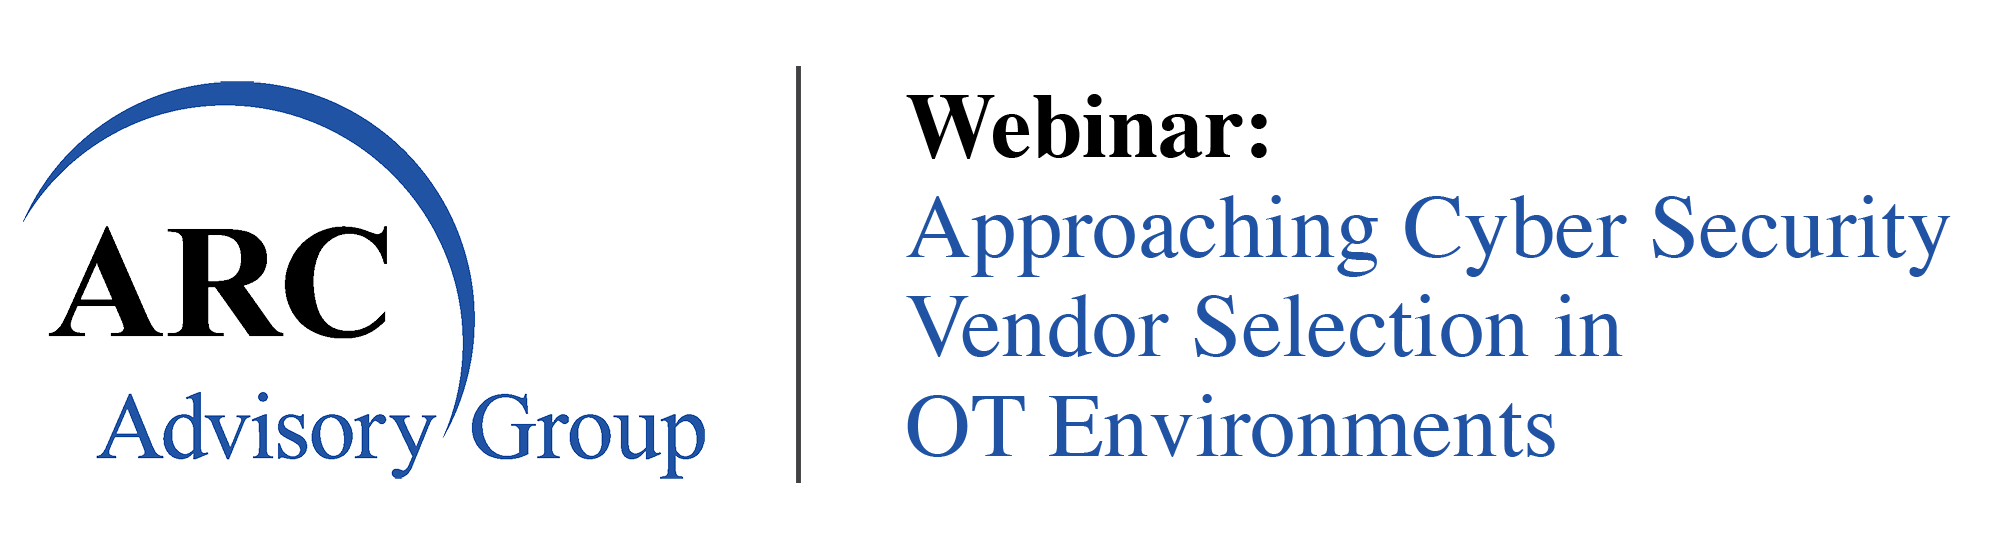 Webinar: Approaching Cyber Security Vendor Selection in OT Environments